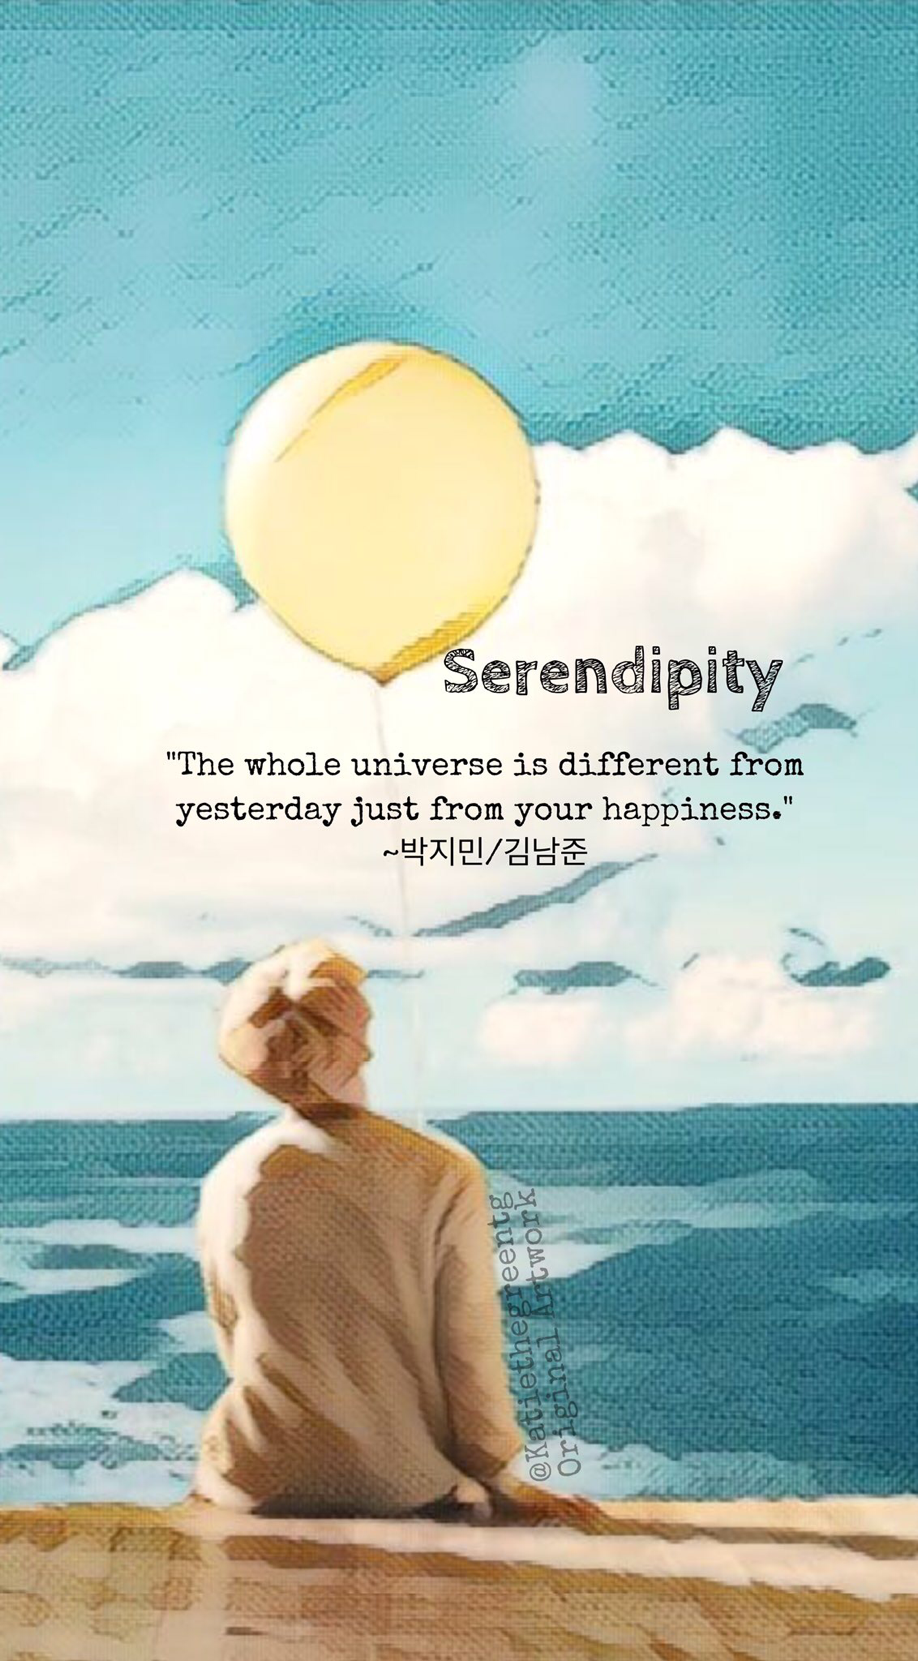 Love Yourself Wallpaper Iphone : Bts wallpaper serendipity Jimin her loveyourself love ...